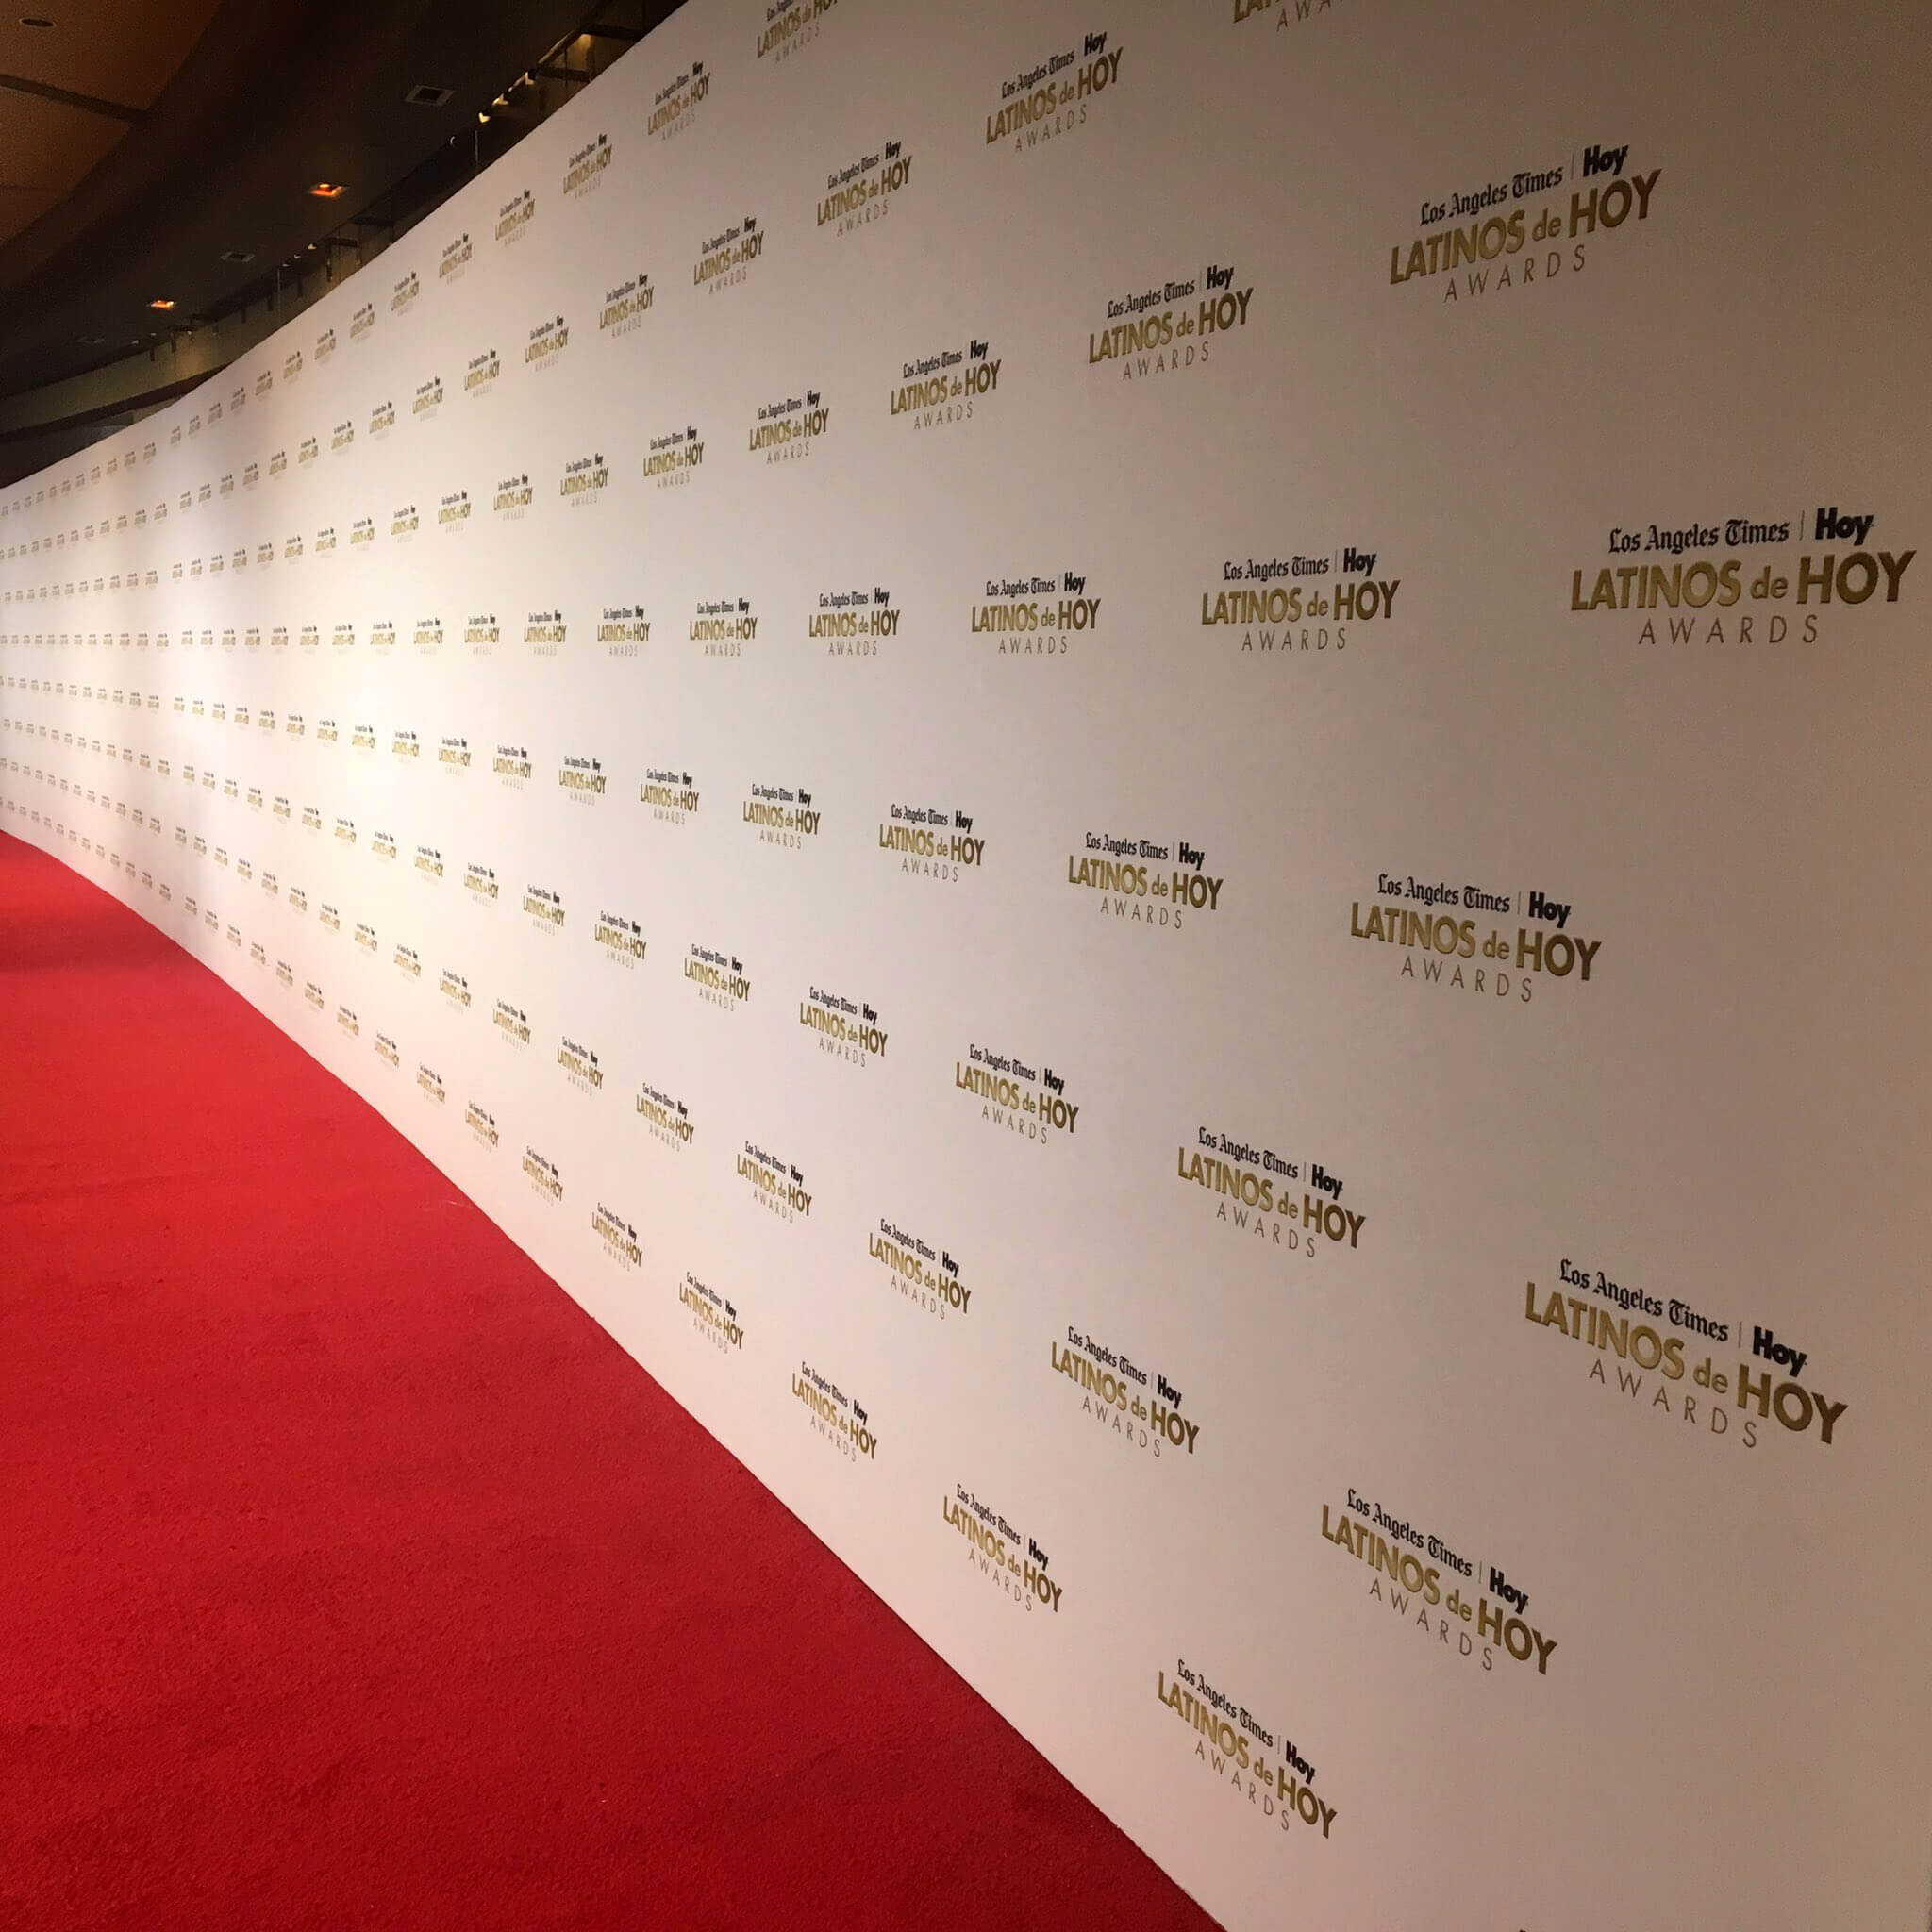 A massive Media Wall for the Latinos de Hoy Awards